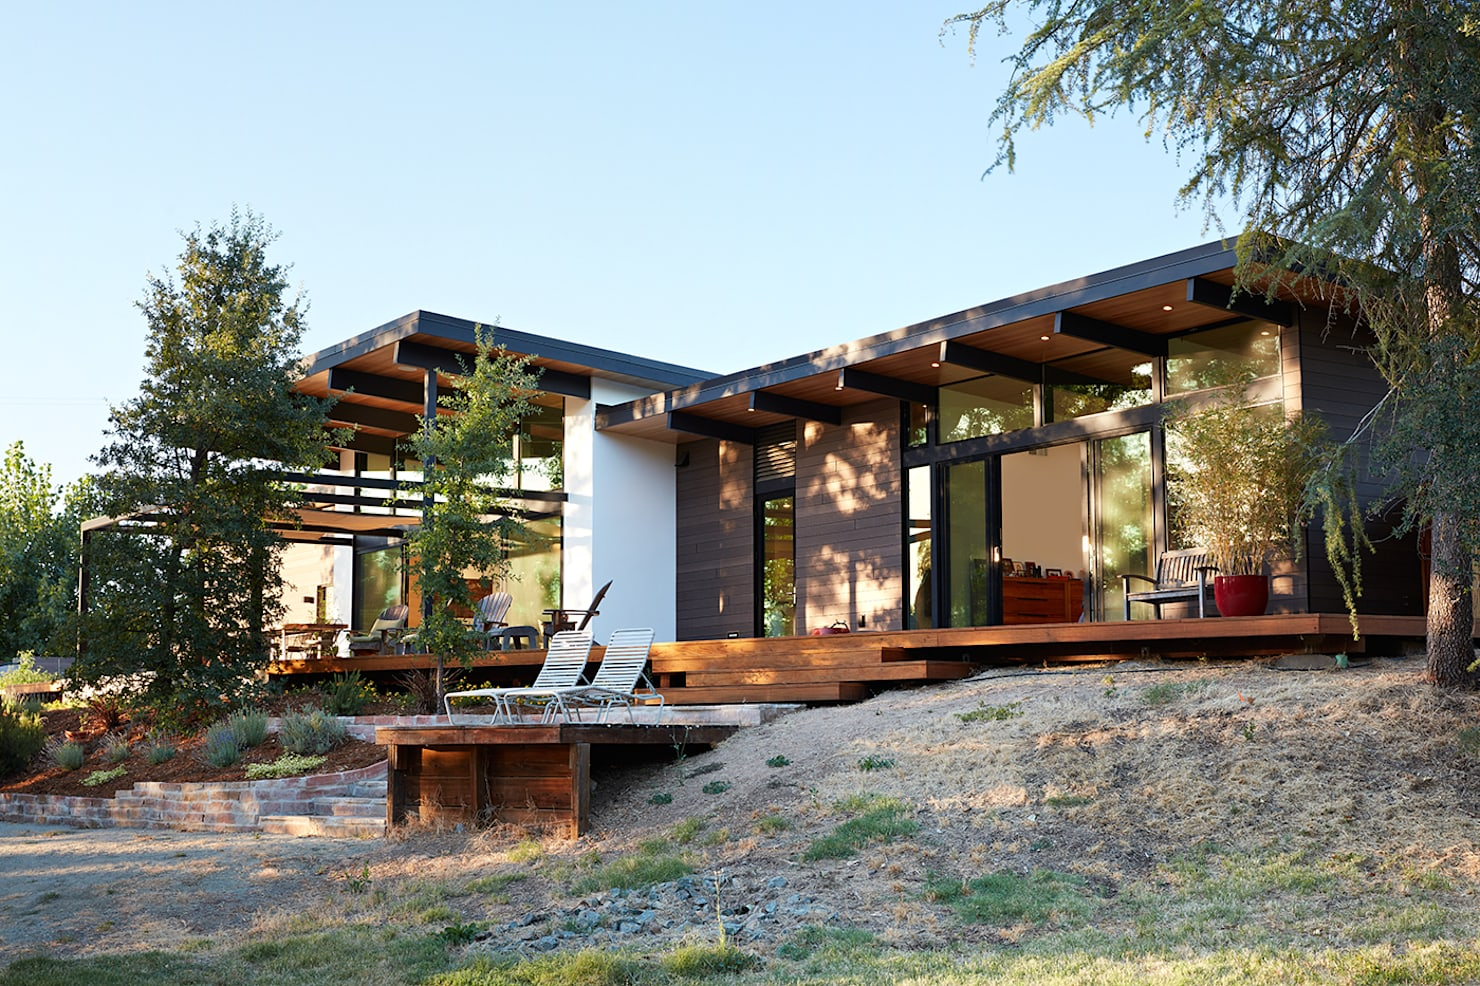 A modern open concept home with stunning exteriors